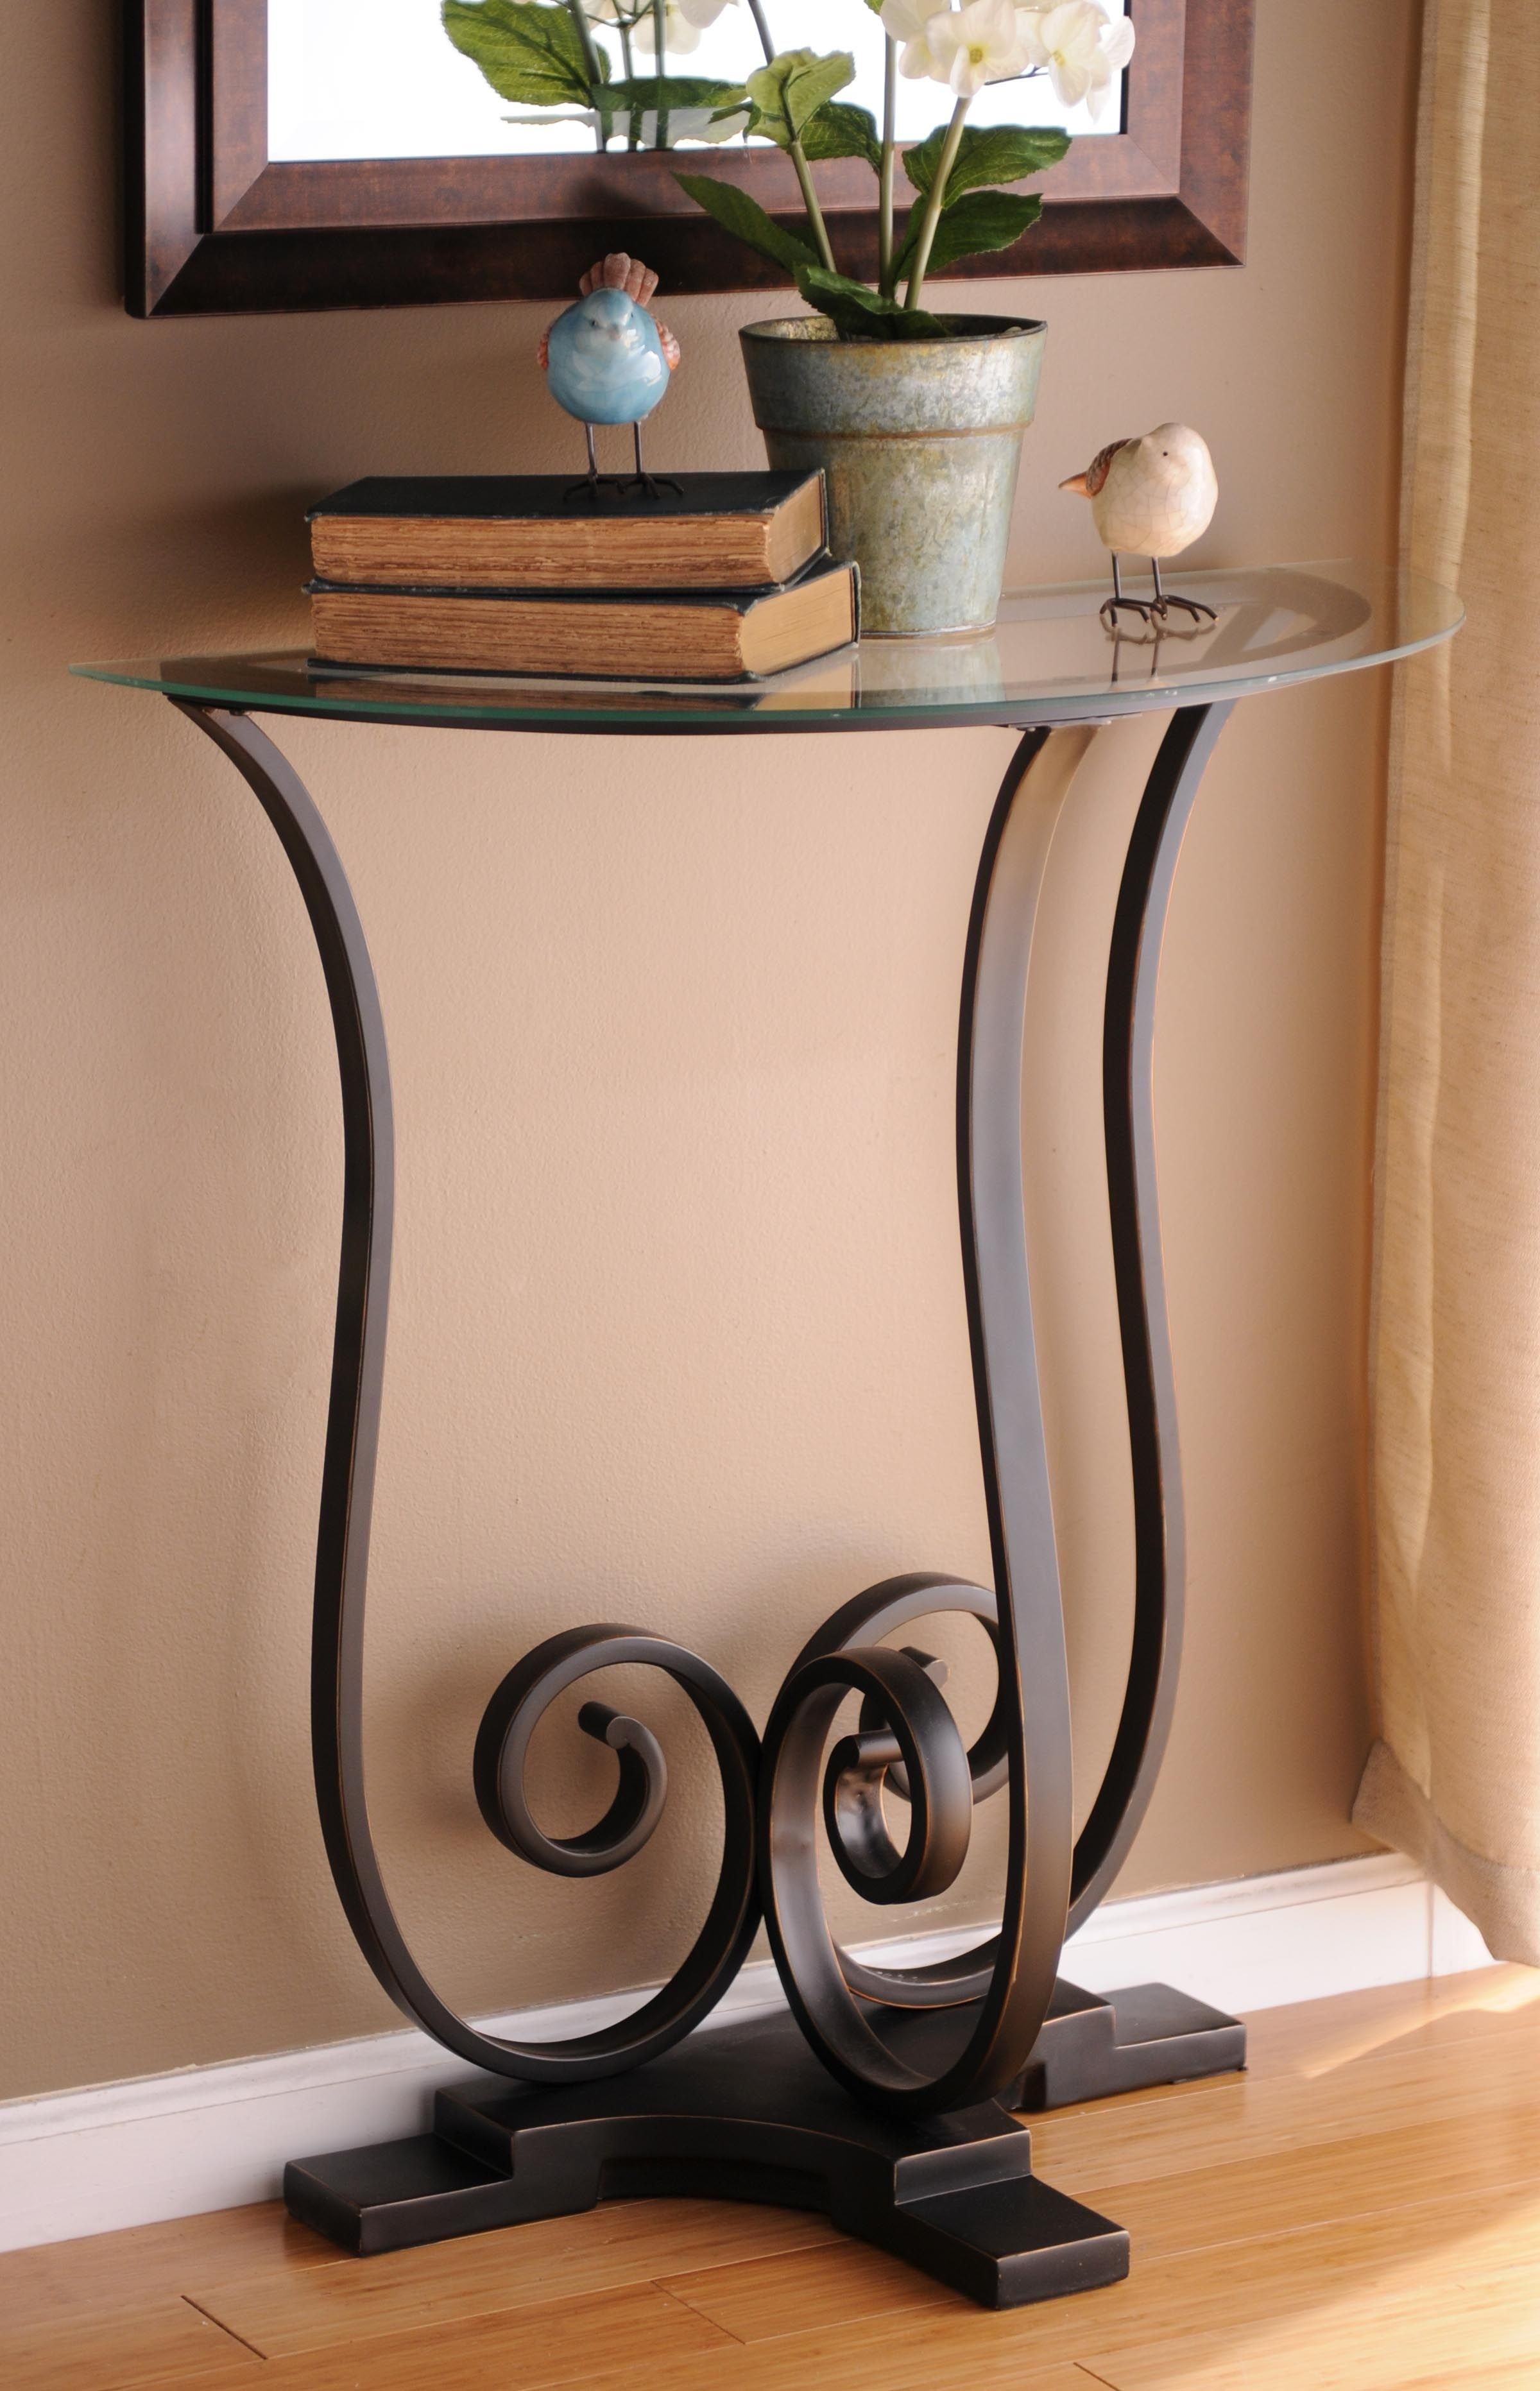 Charmant Half Round Entry Table